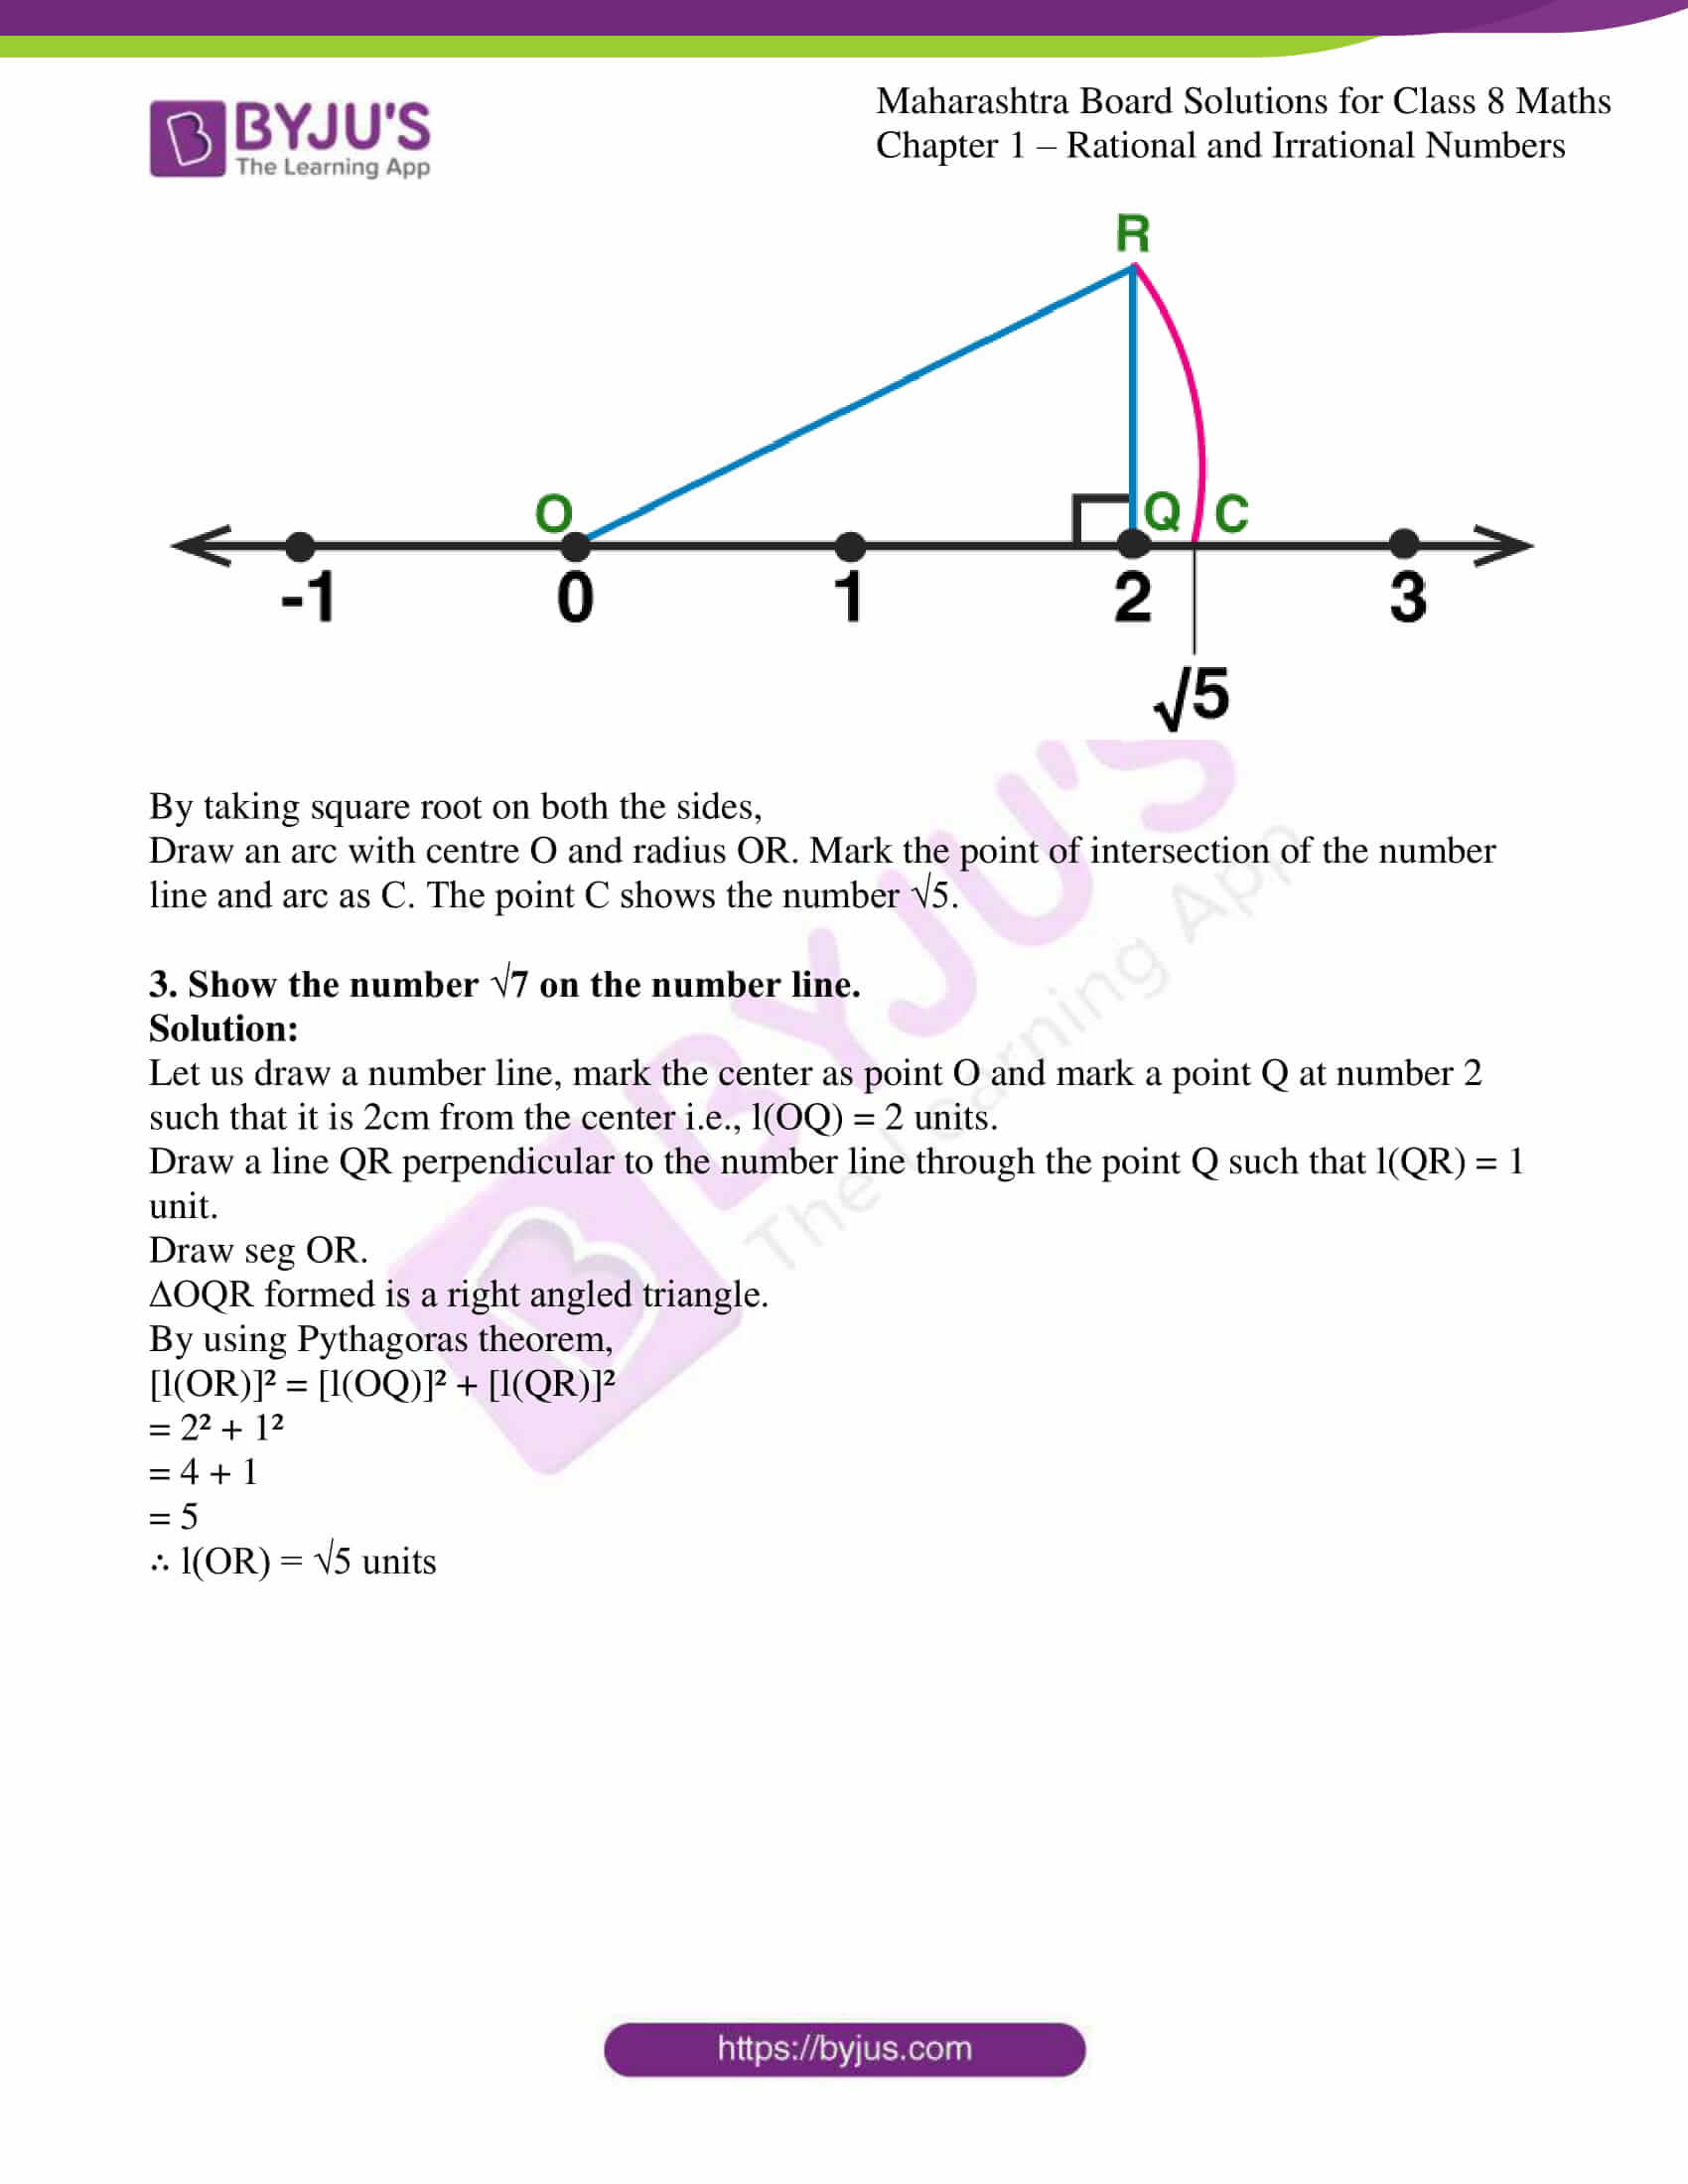 msbshse sol for class 8 maths chapter 1 12